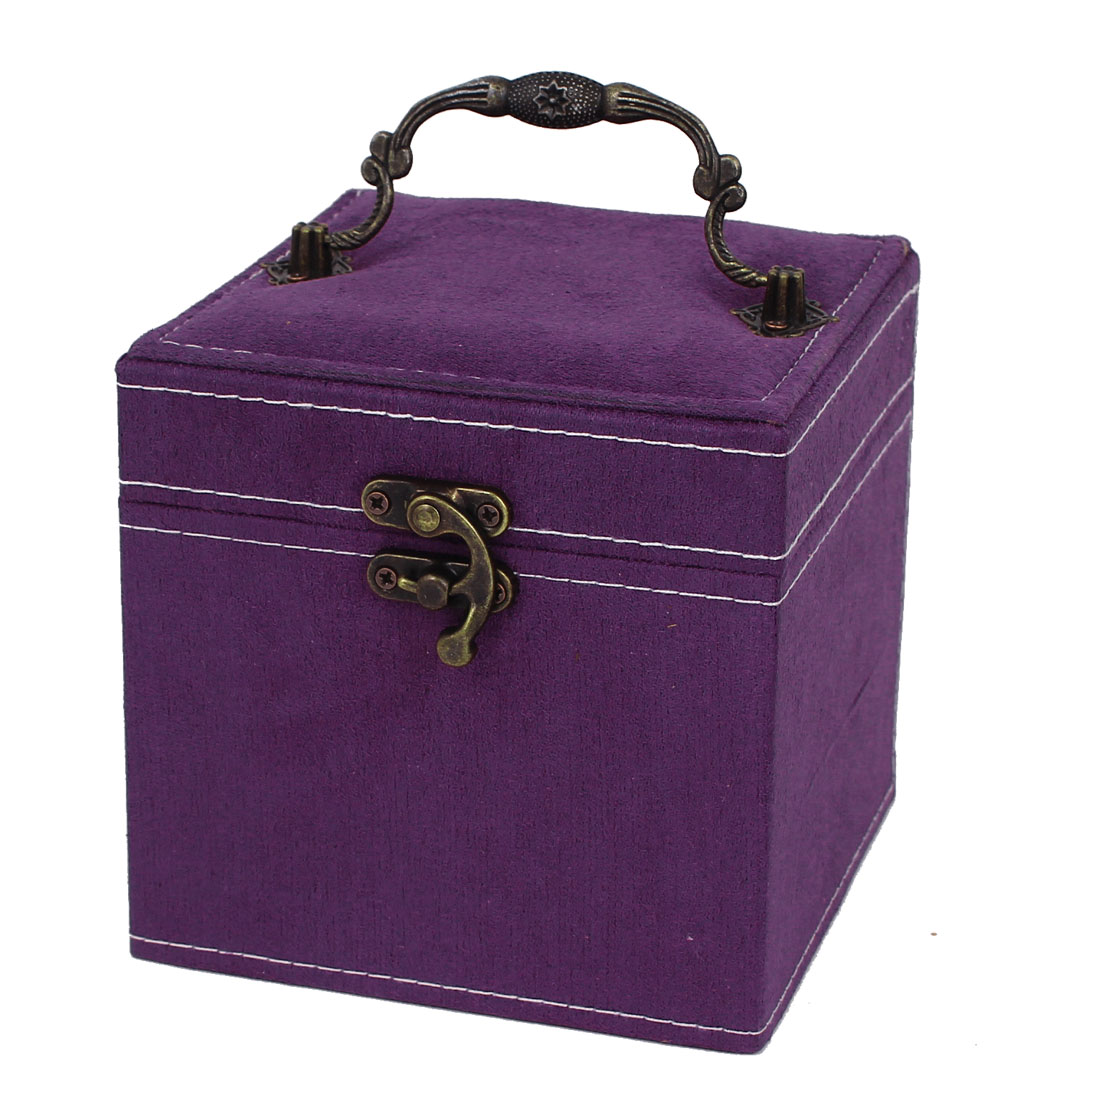 Portable Flannel Wrapped 3-Layers Jewelry Box Case Earrings Rings Organizer Purple